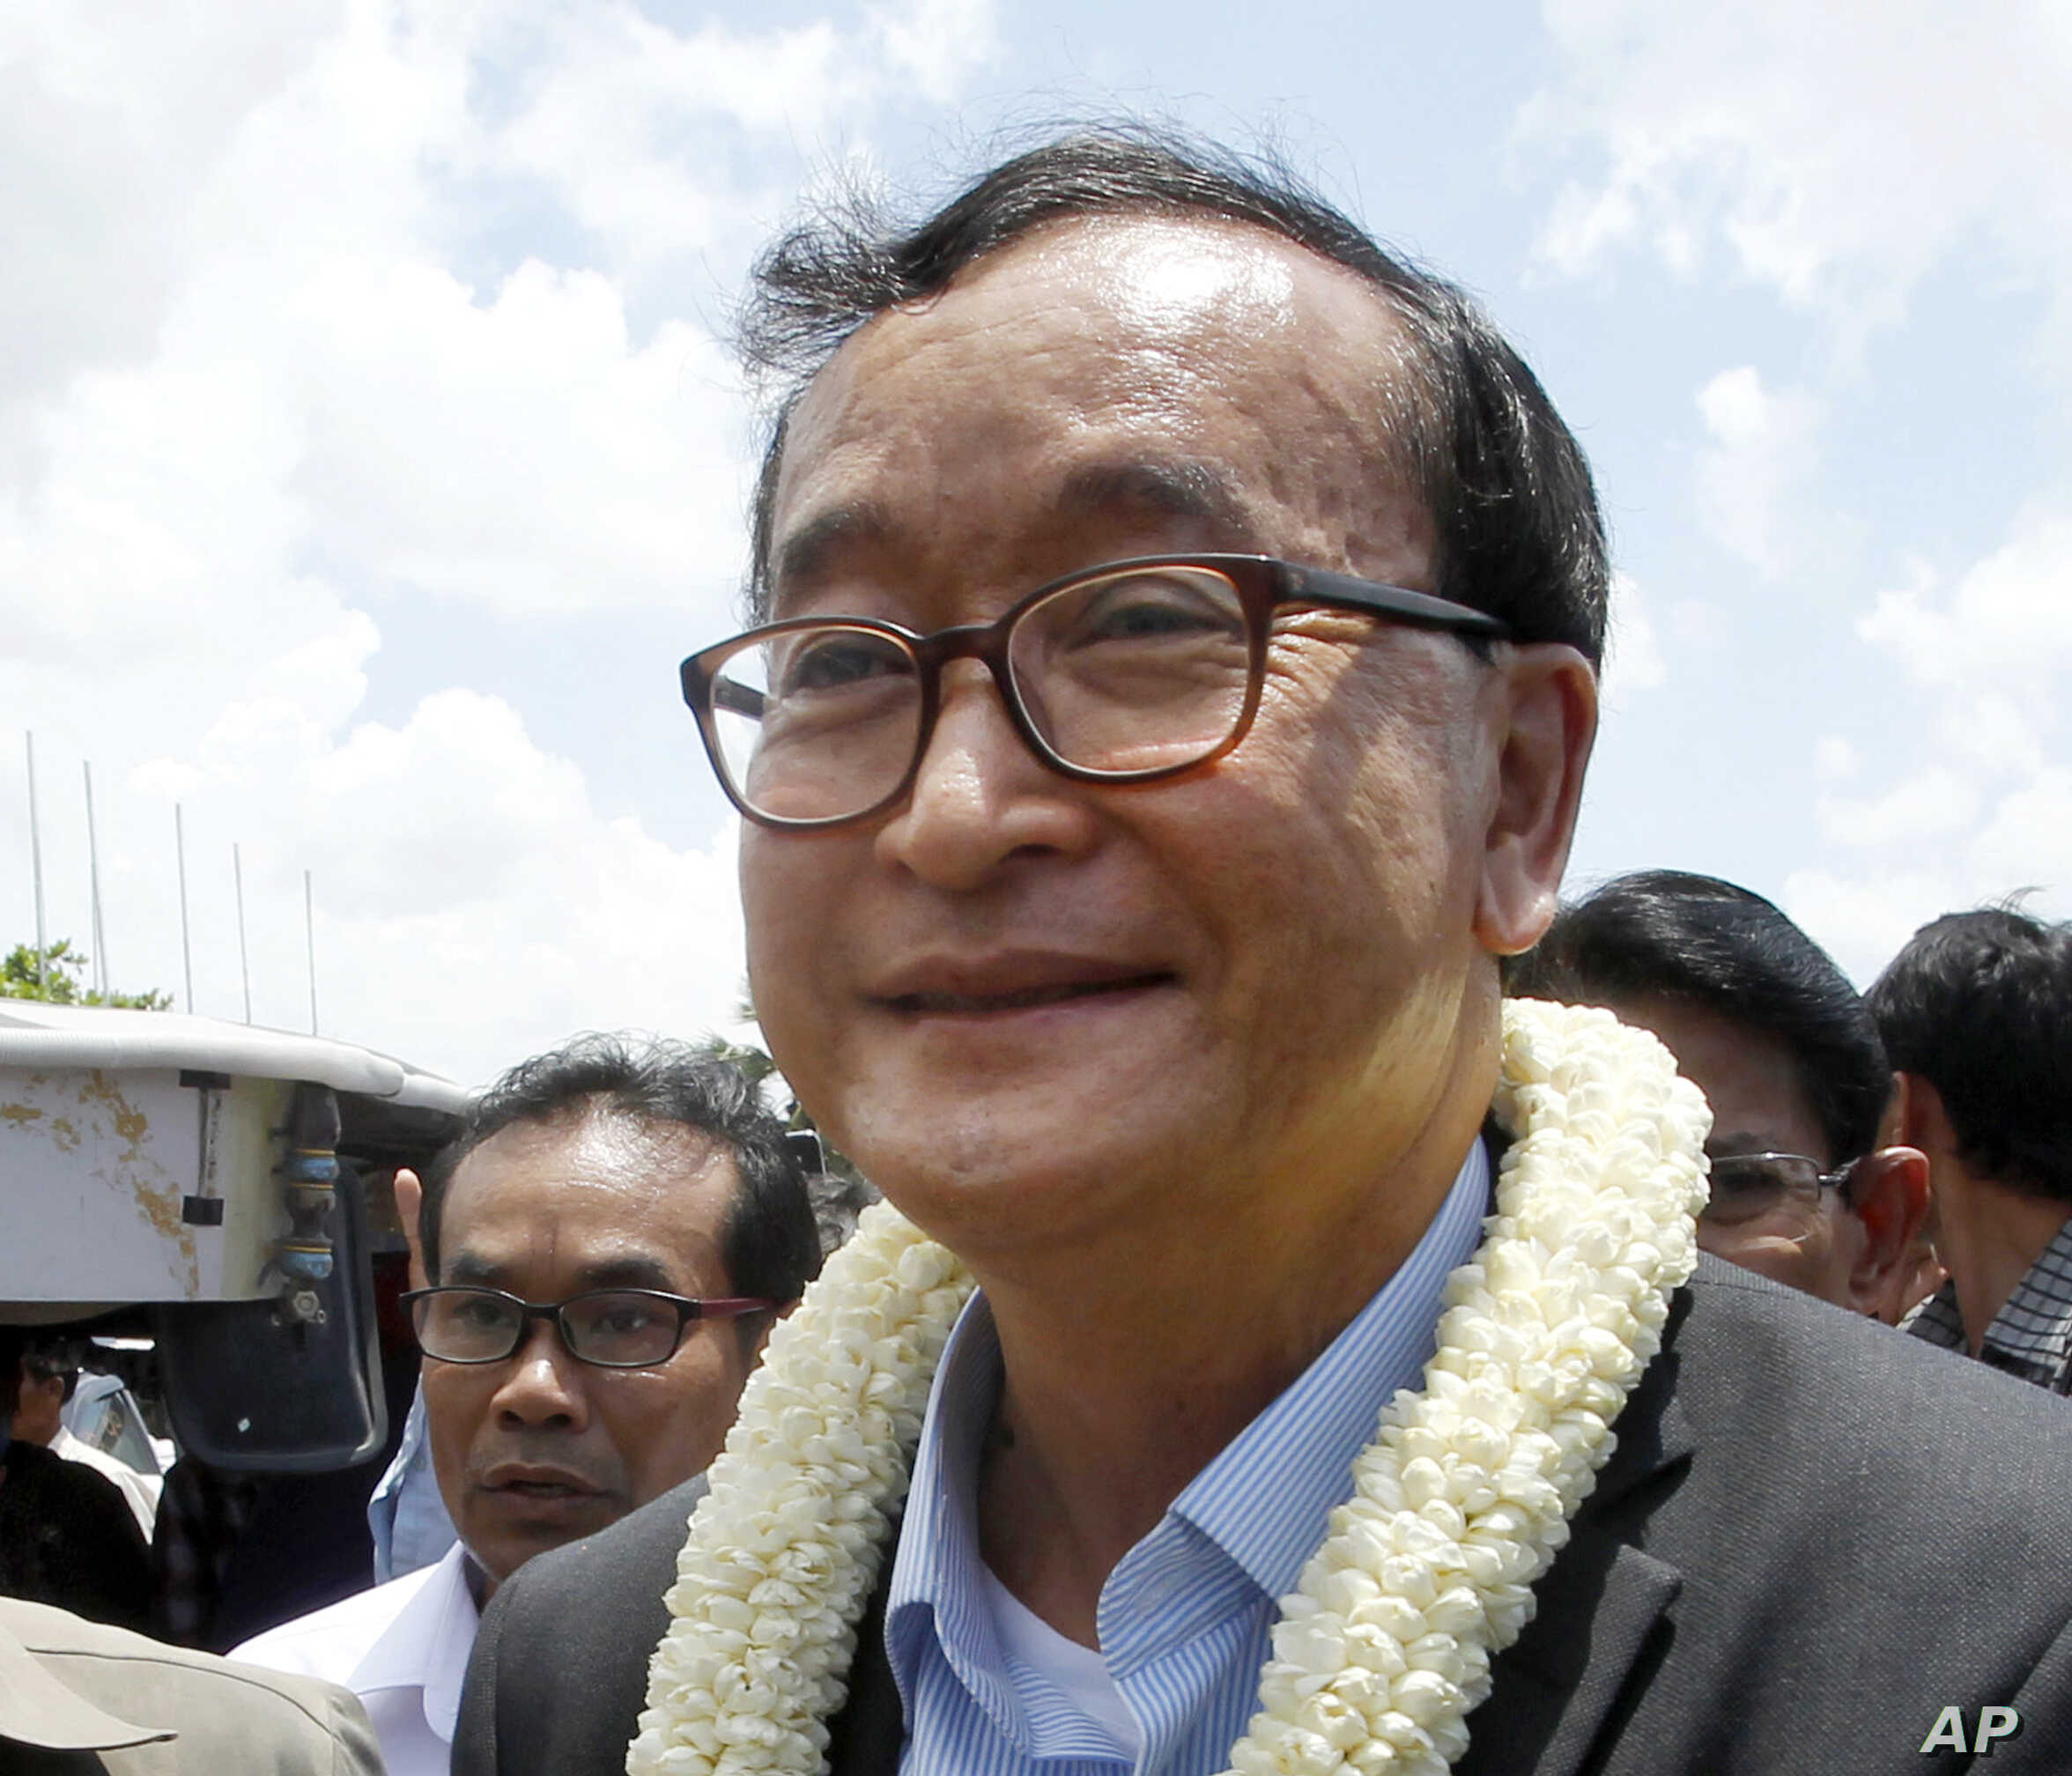 FILE - In this Aug. 16, 2015, file photo, Sam Rainsy, leader of the opposition Cambodia National Rescue Party, greets his party supporters upon his arrival at Phnom Penh International Airport in Phnom Penh, Cambodia. The Phnom Penh Municipal Court on...